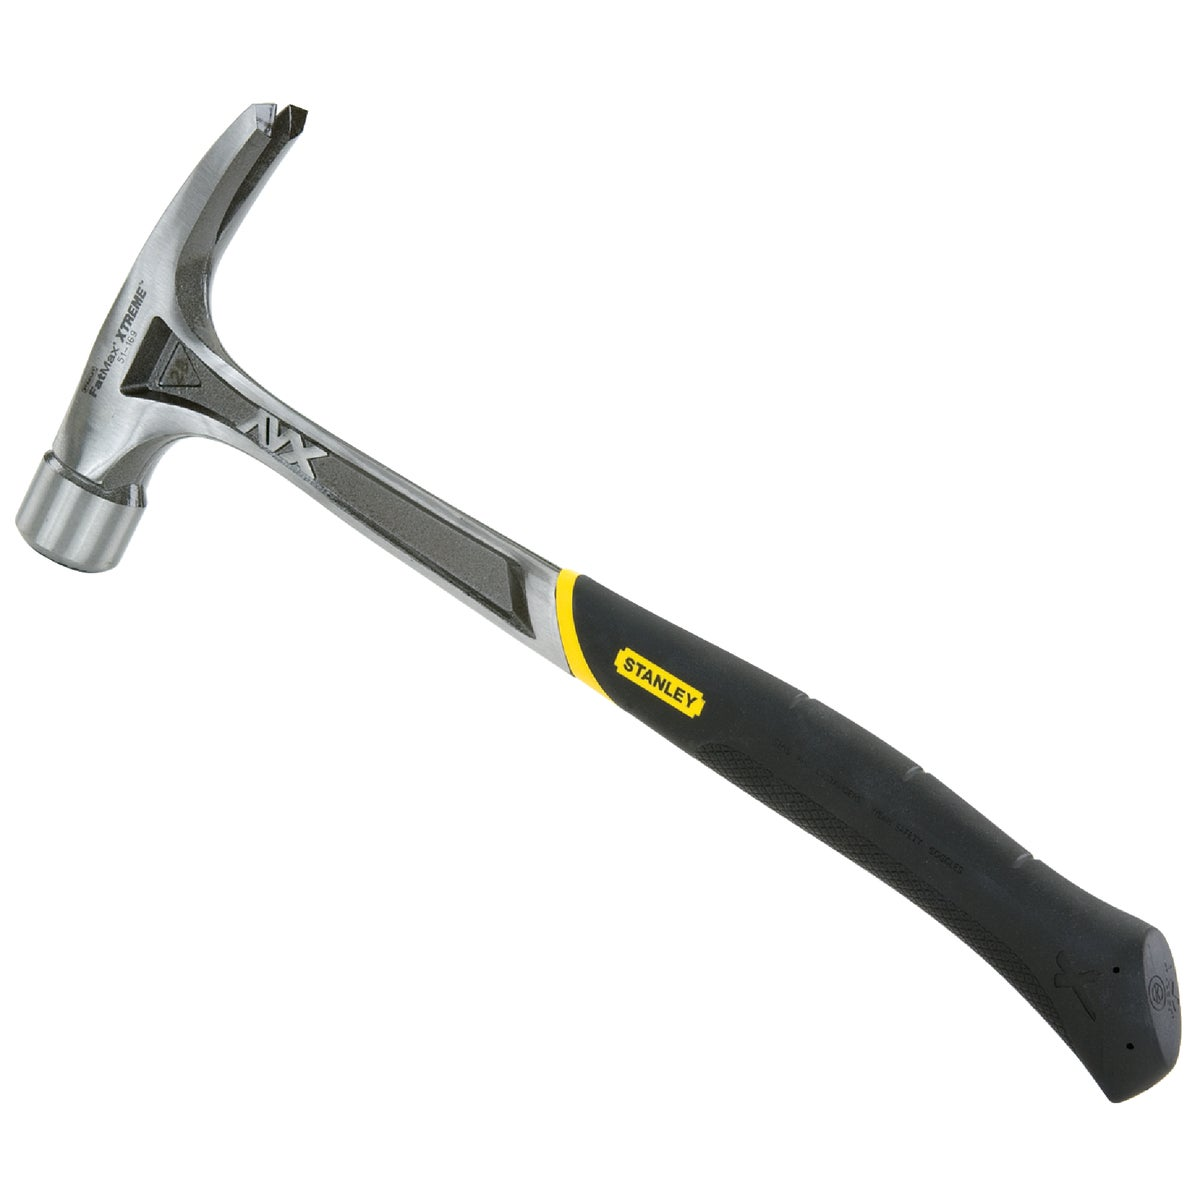 22OZ AVX FRAMING HAMMER - 51-167 by Stanley Tools